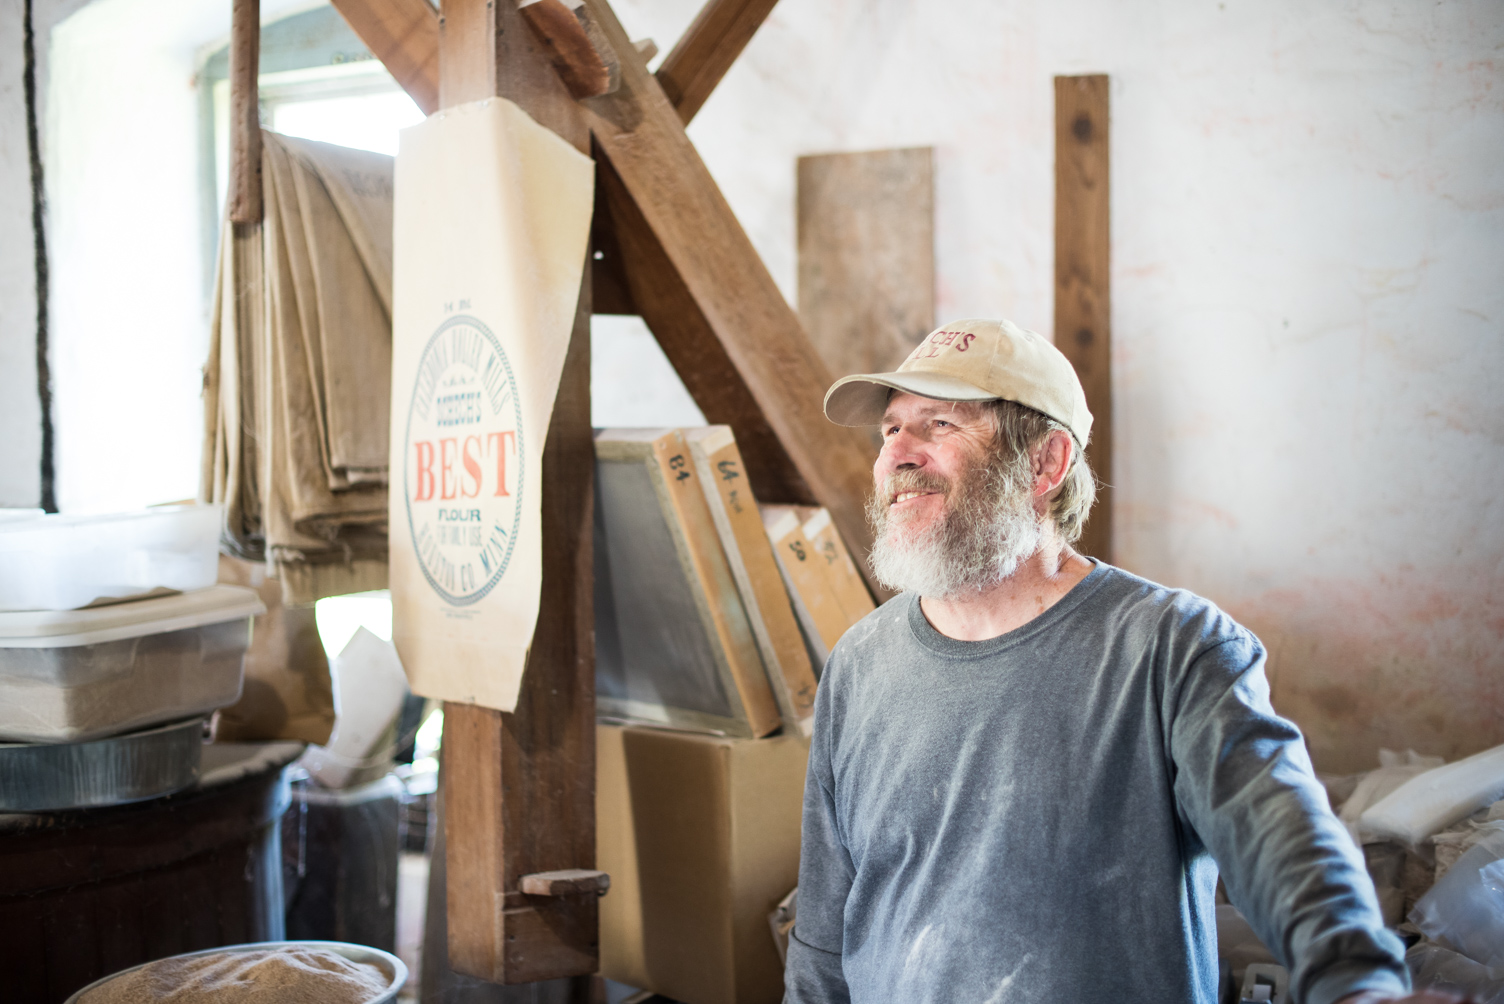 Ed Krugmire is the owner and caretaker of Schech's Mill // Photo by Kevin Kramer, The Growler